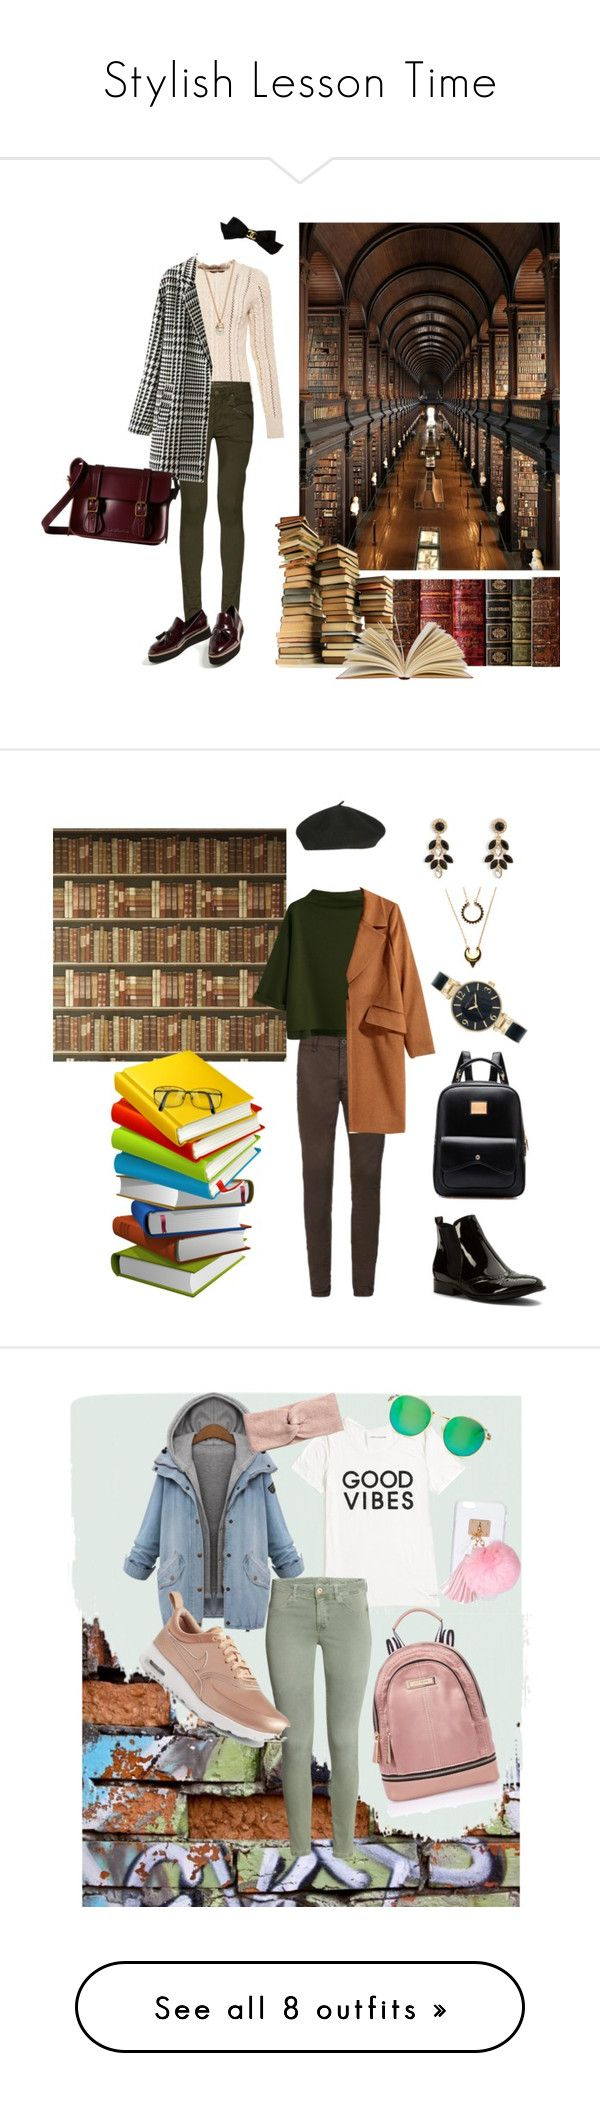 """Stylish Lesson Time"" by keepfashion92 ❤ liked on Polyvore featuring Superdry, BlendShe, Chanel, Dr. Martens, LC Lauren Conrad, vintage, H&M, Wanted, WithChic and Vera Bradley"